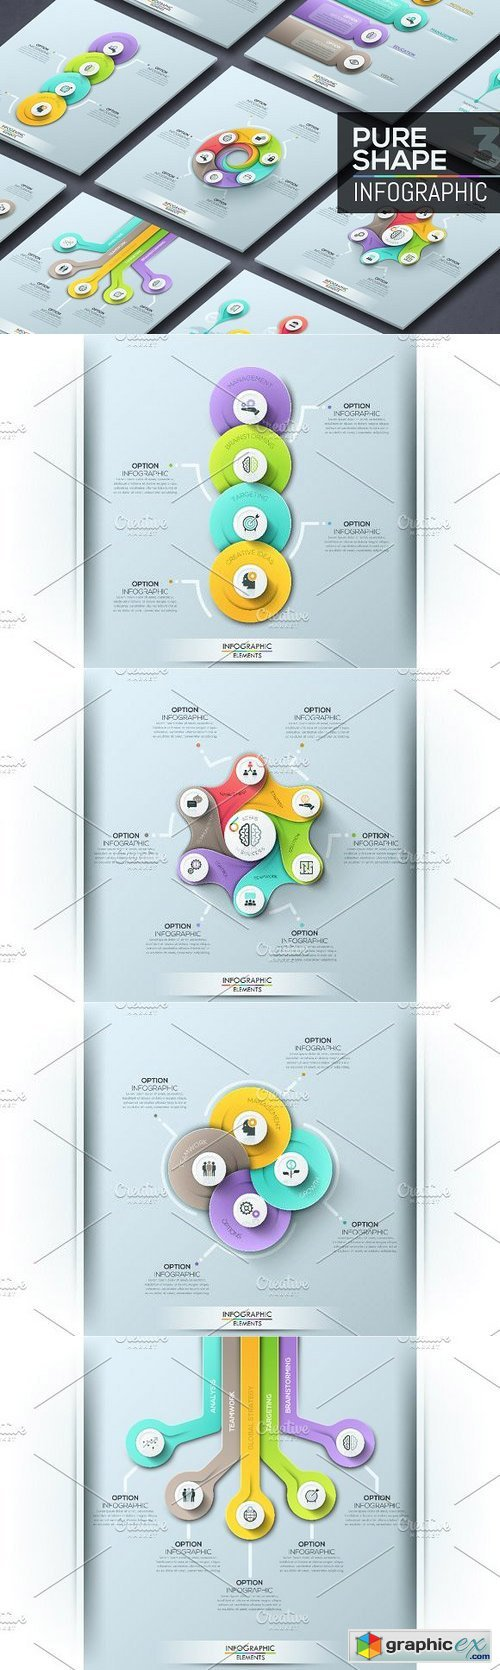 Pure Shape Infographic. Set 4